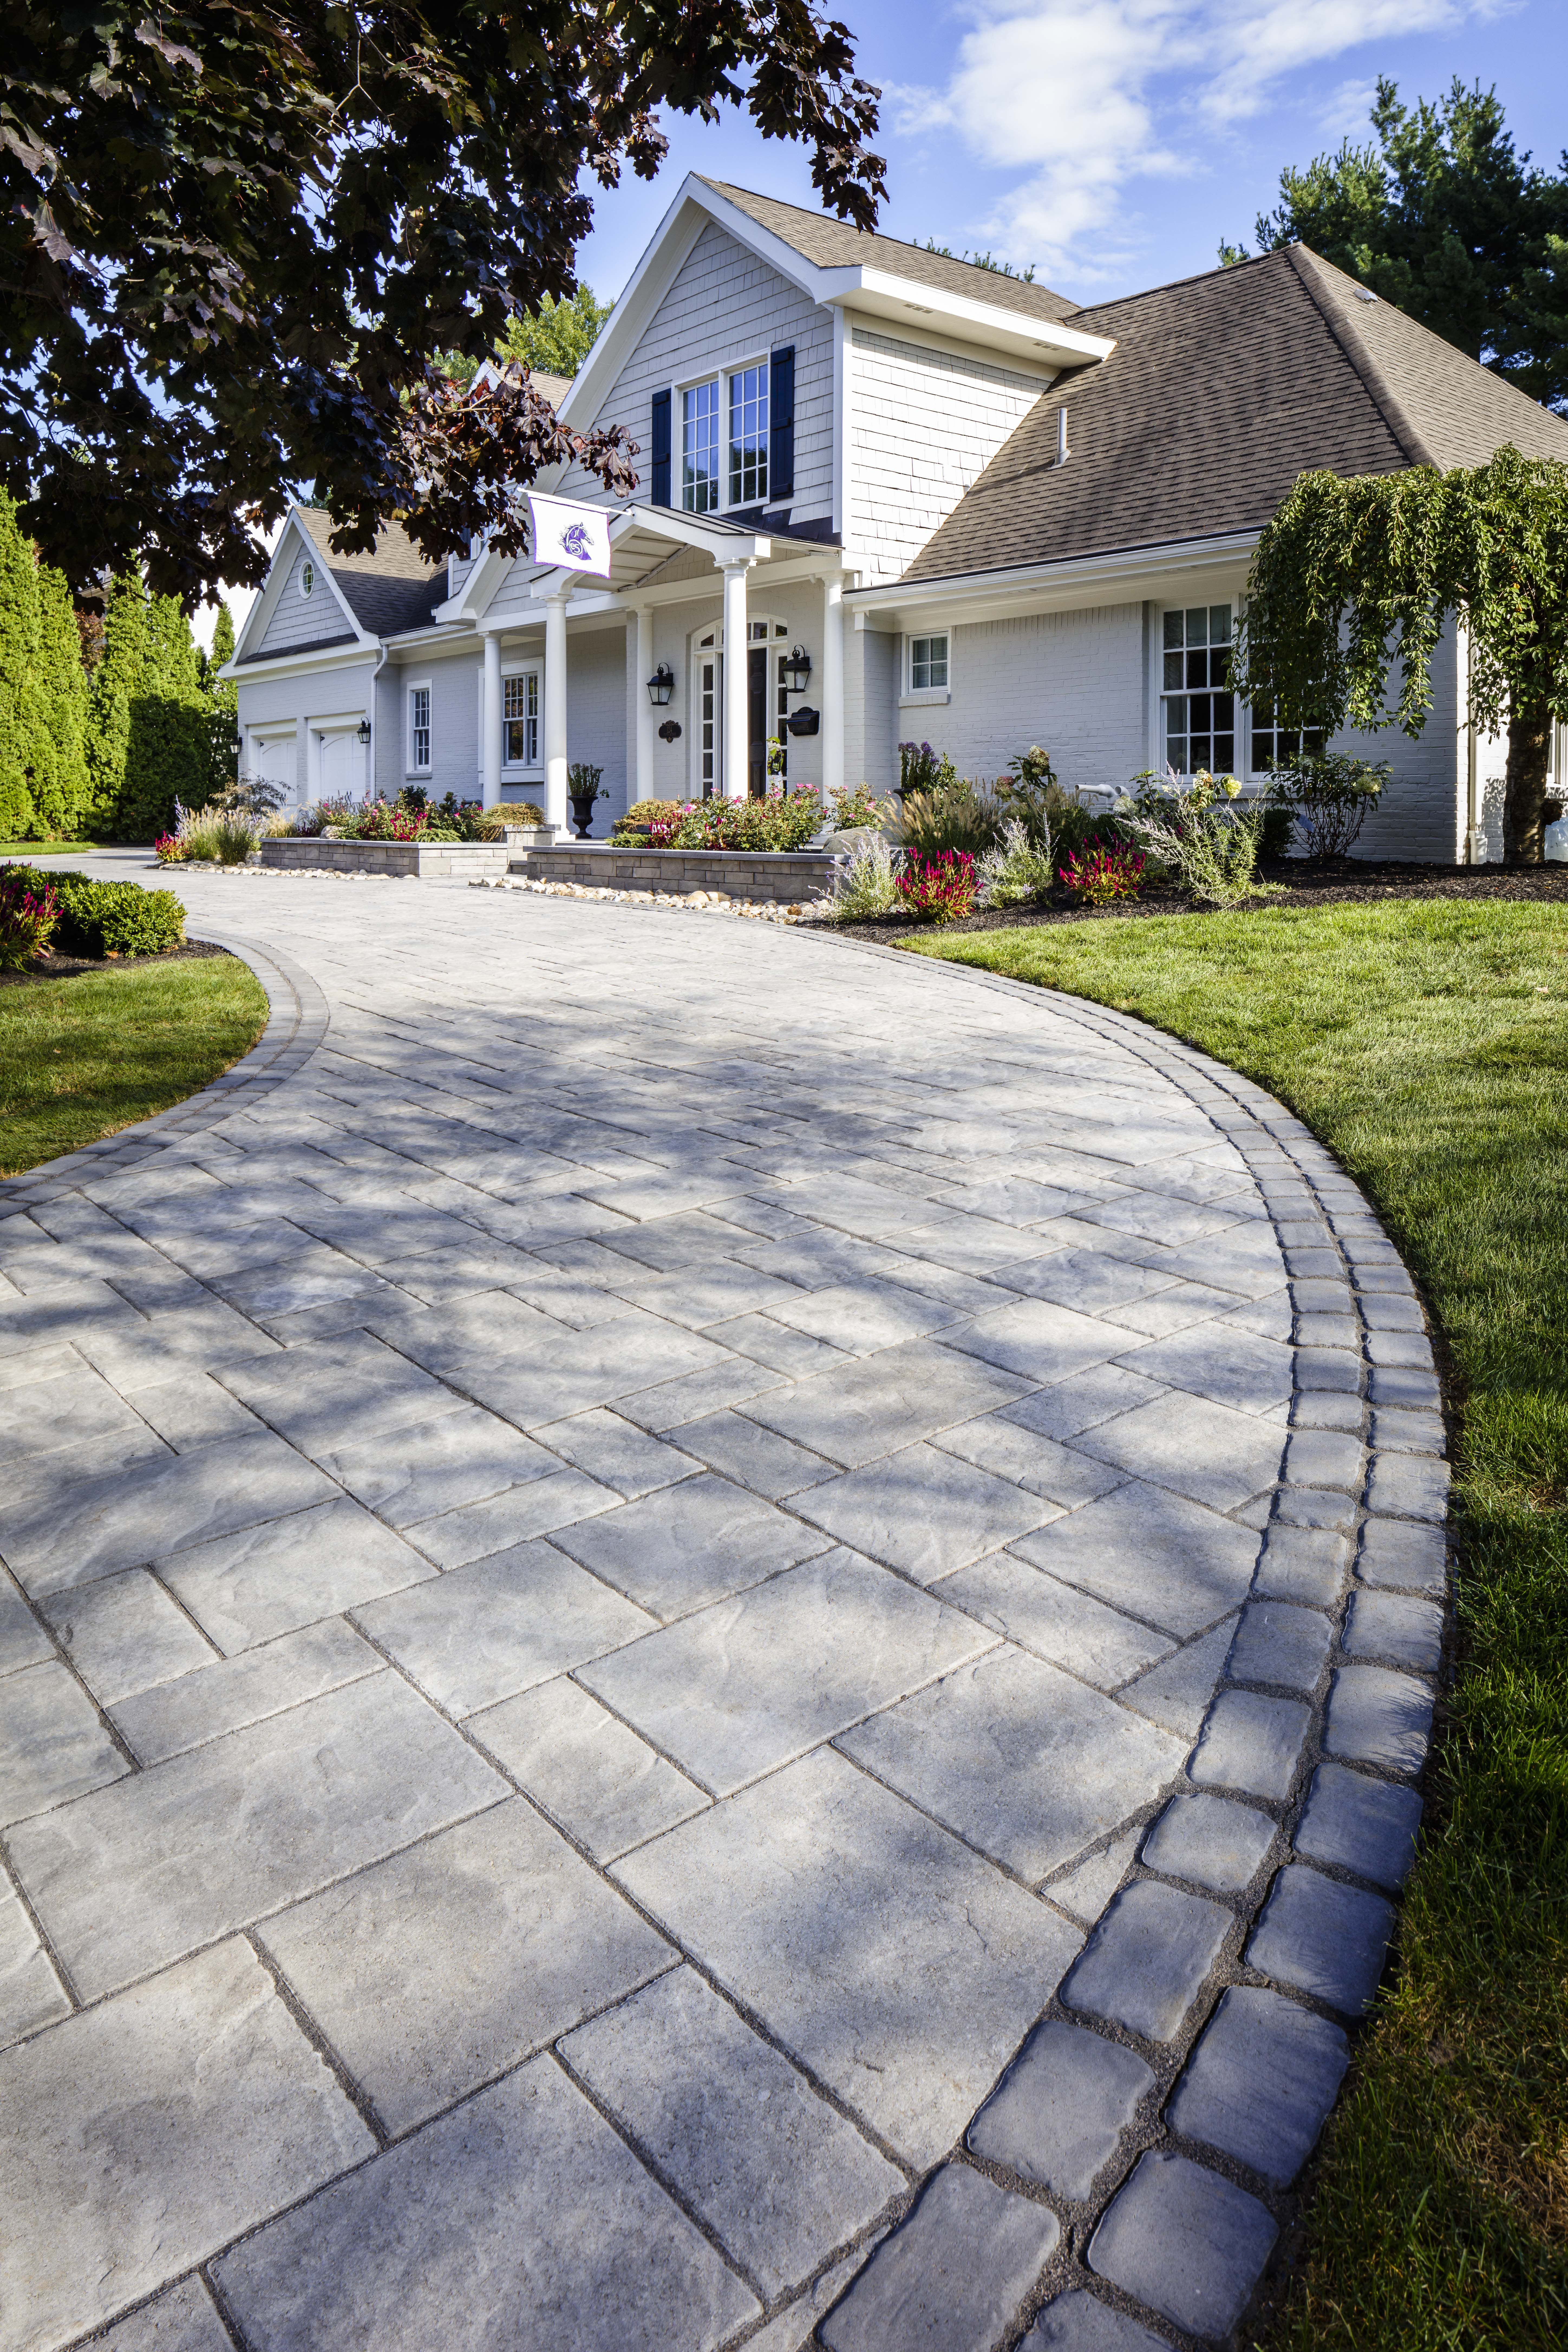 Traditional Curb Appeal The Blu 80 Mm Pavers Were Used For The Driveway To Create A Natural Stone Look Great For All Exteri Patio Stones Backyard Patio Patio